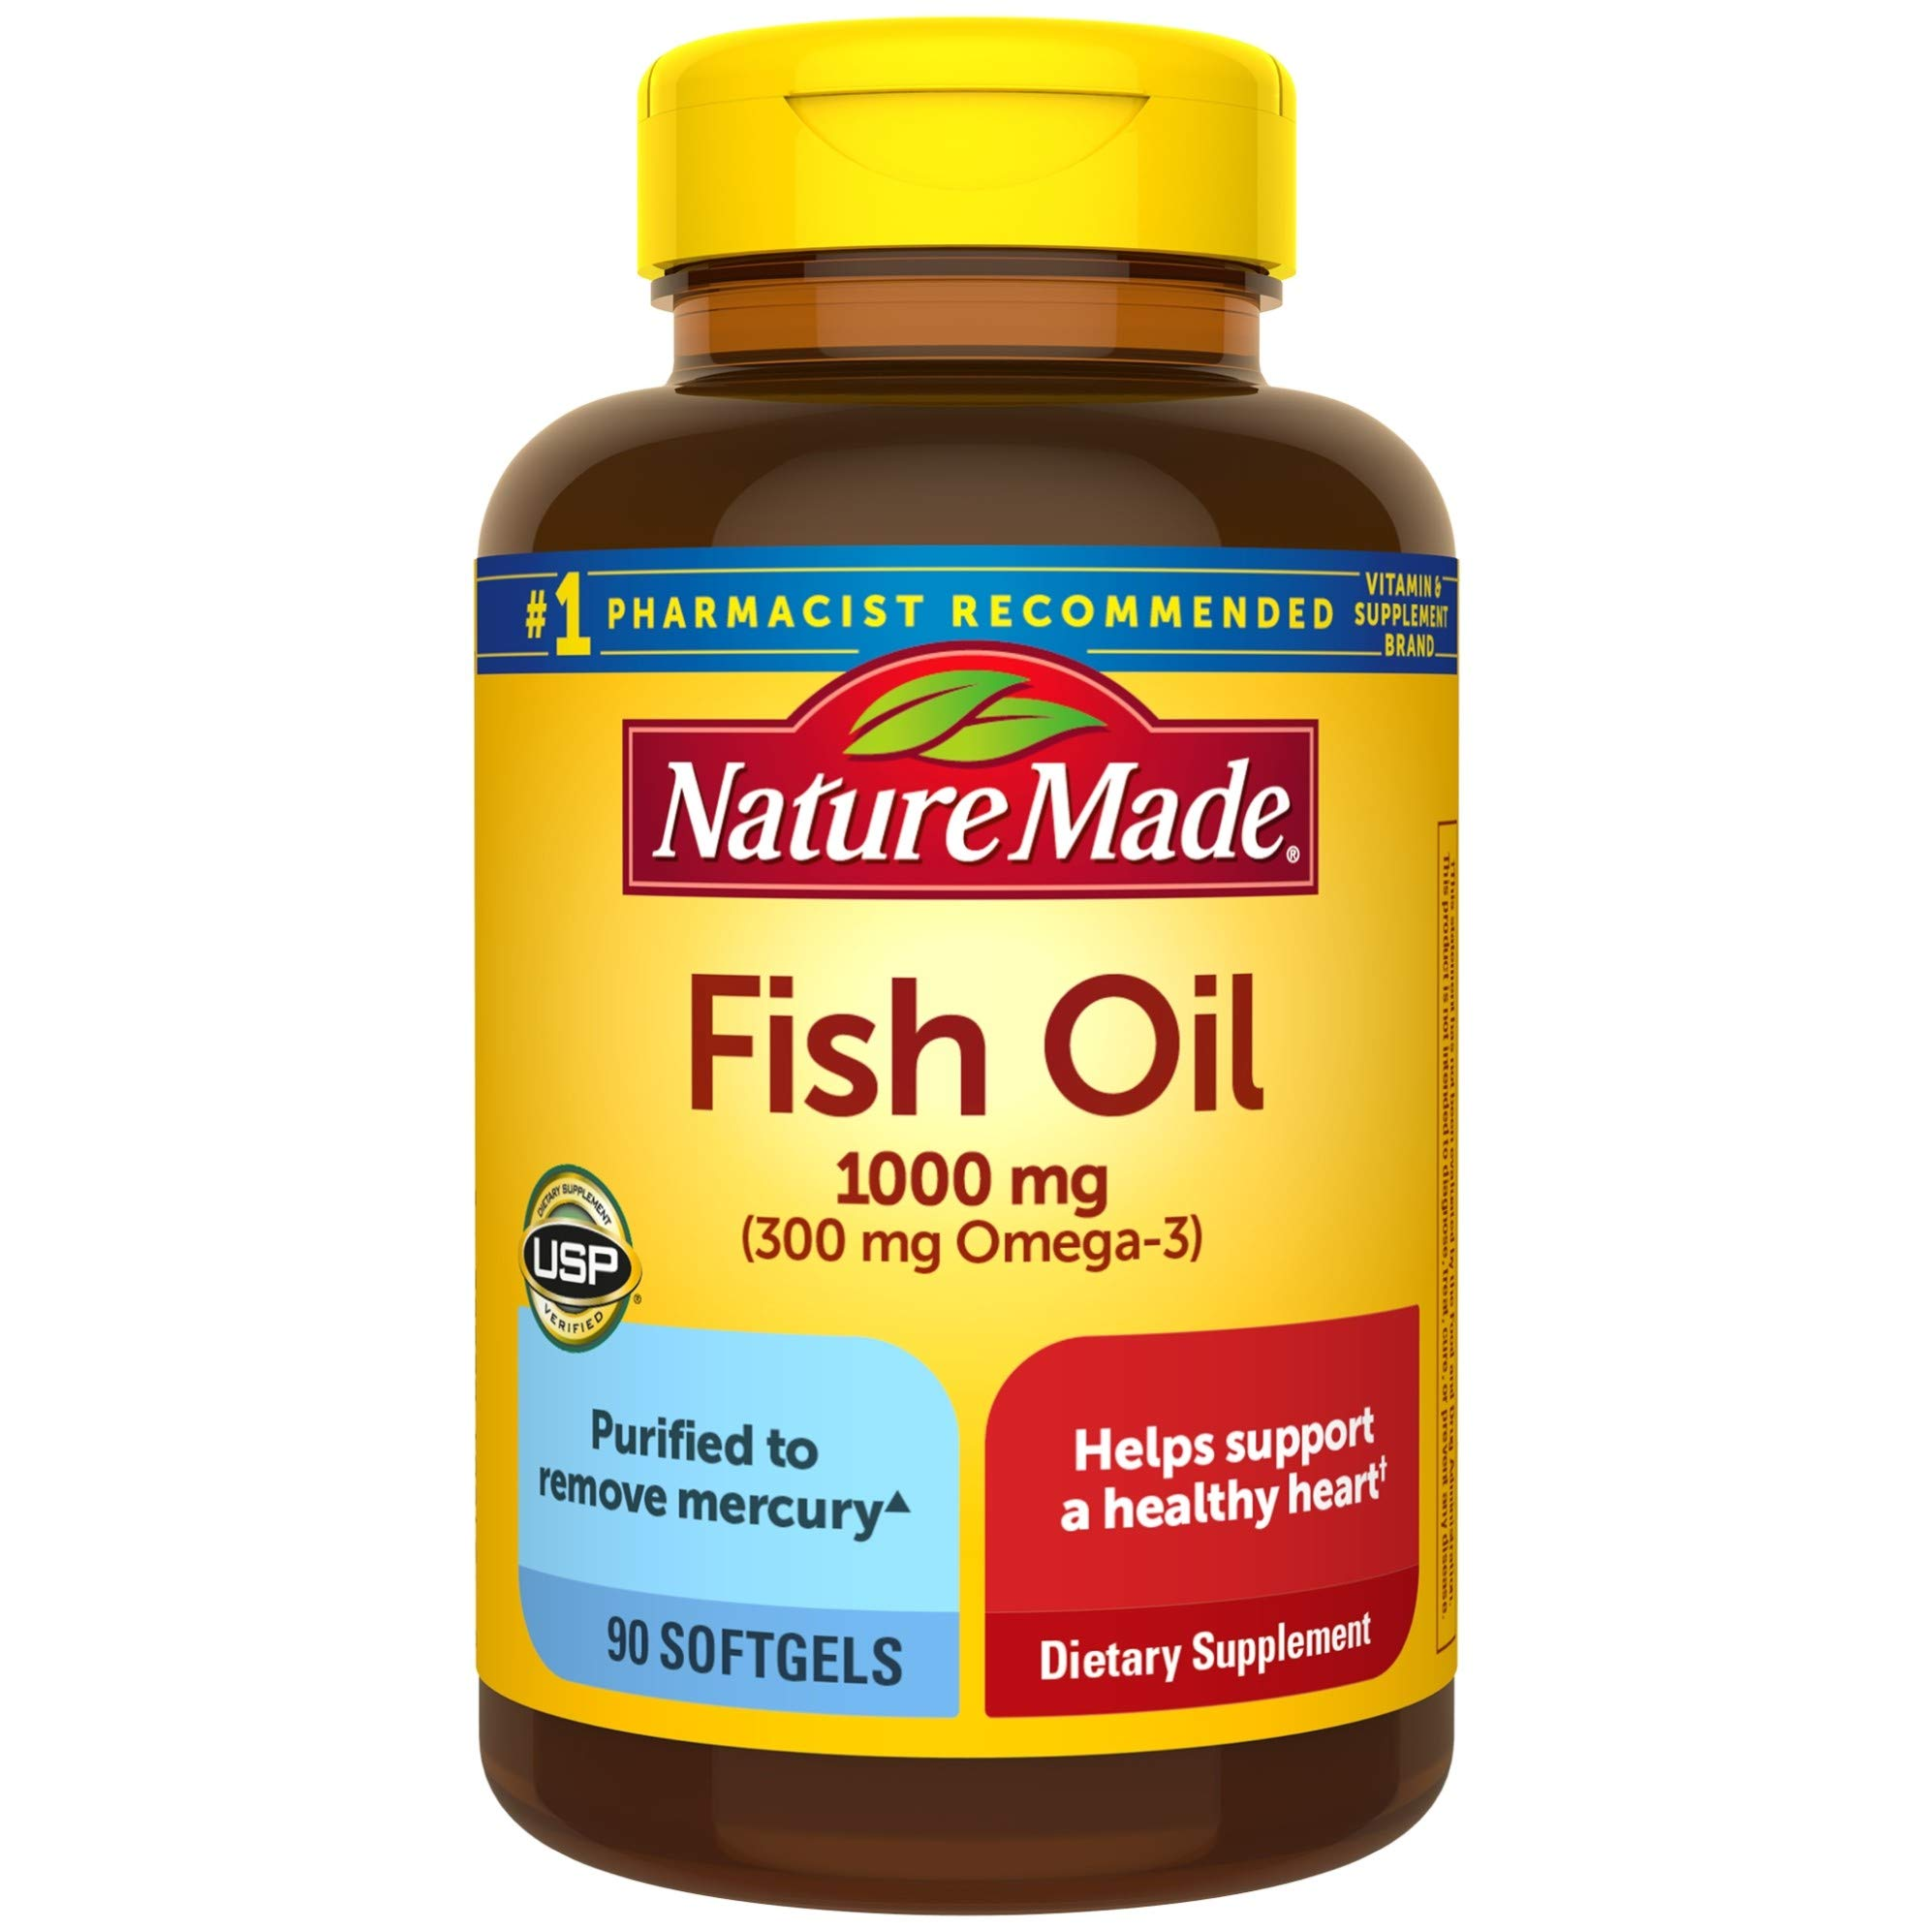 Fish Oil 1000 mg, 90 Softgels, Fish Oil Omega 3 Supplement For Heart Health